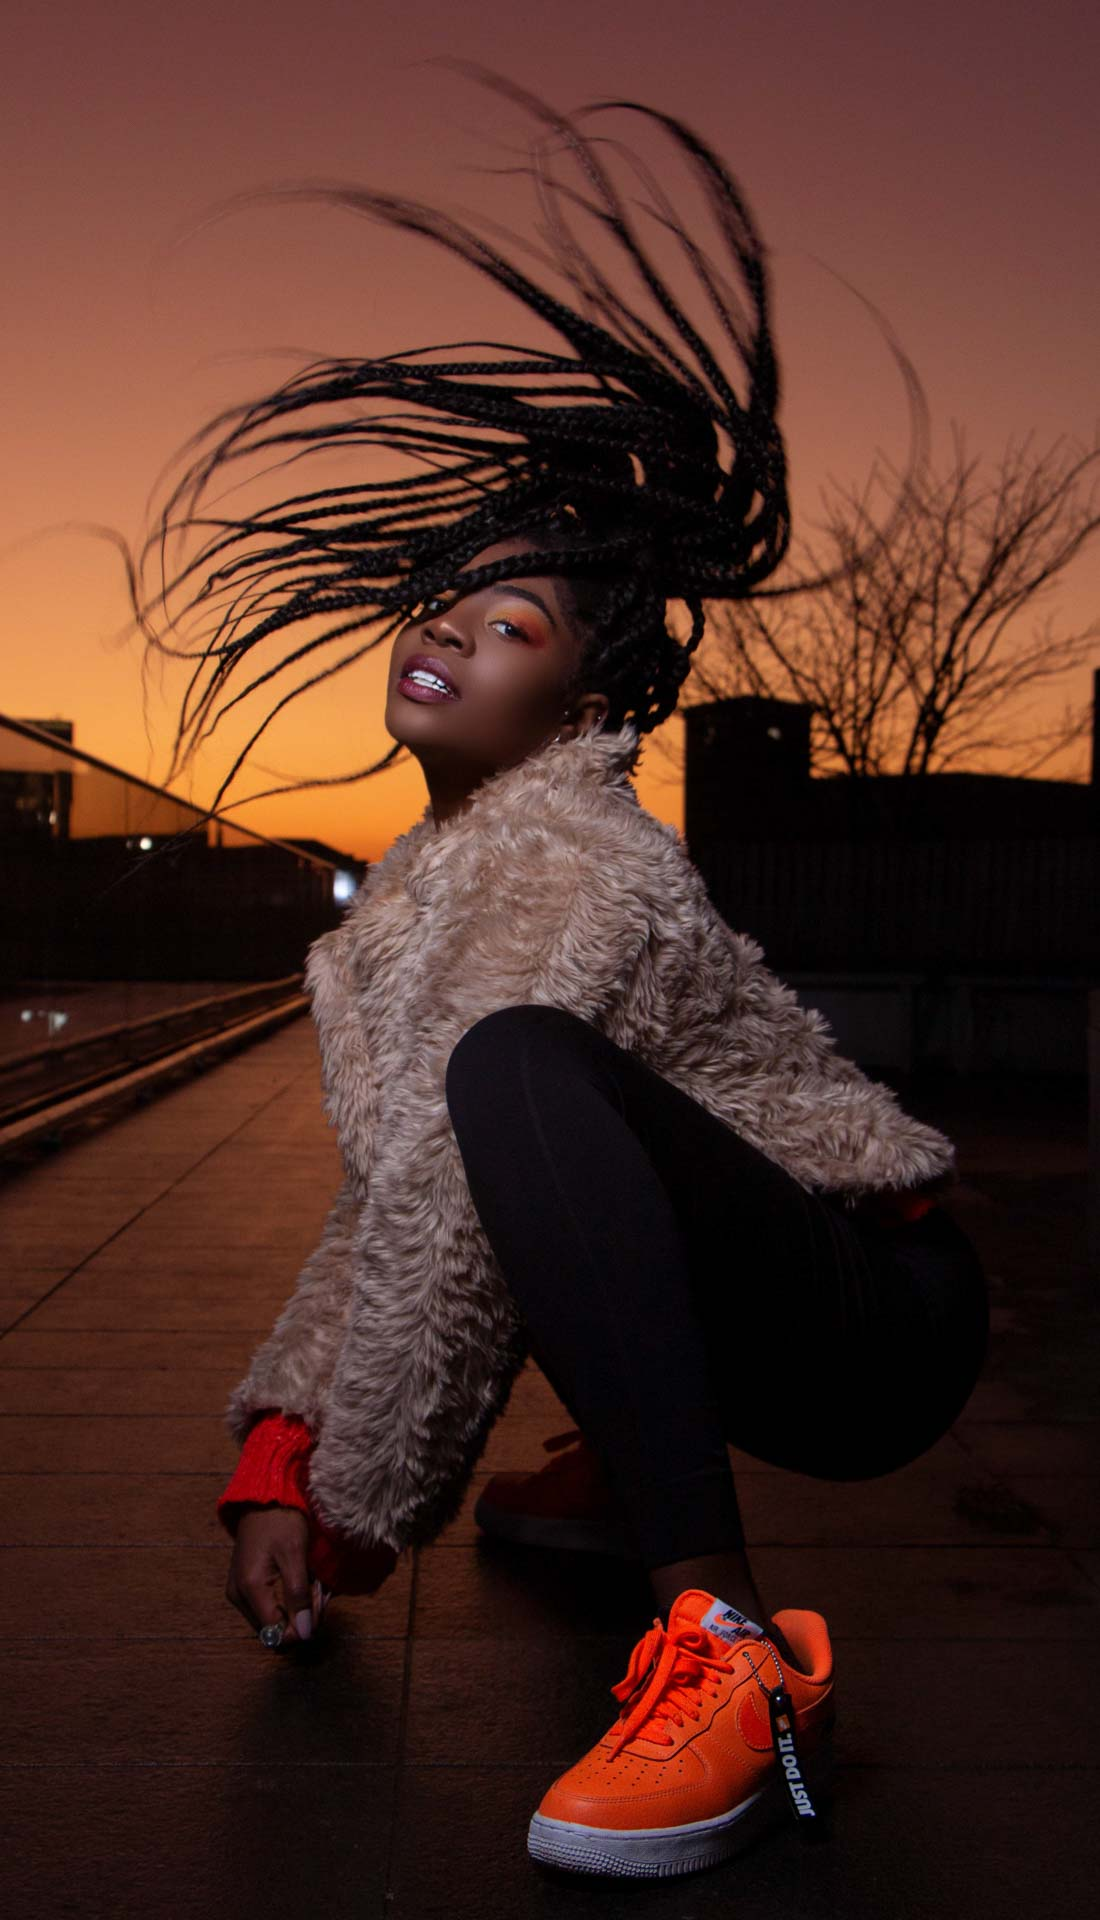 Combination of dance and fashion at night Birmingham by a Midlands street dancer